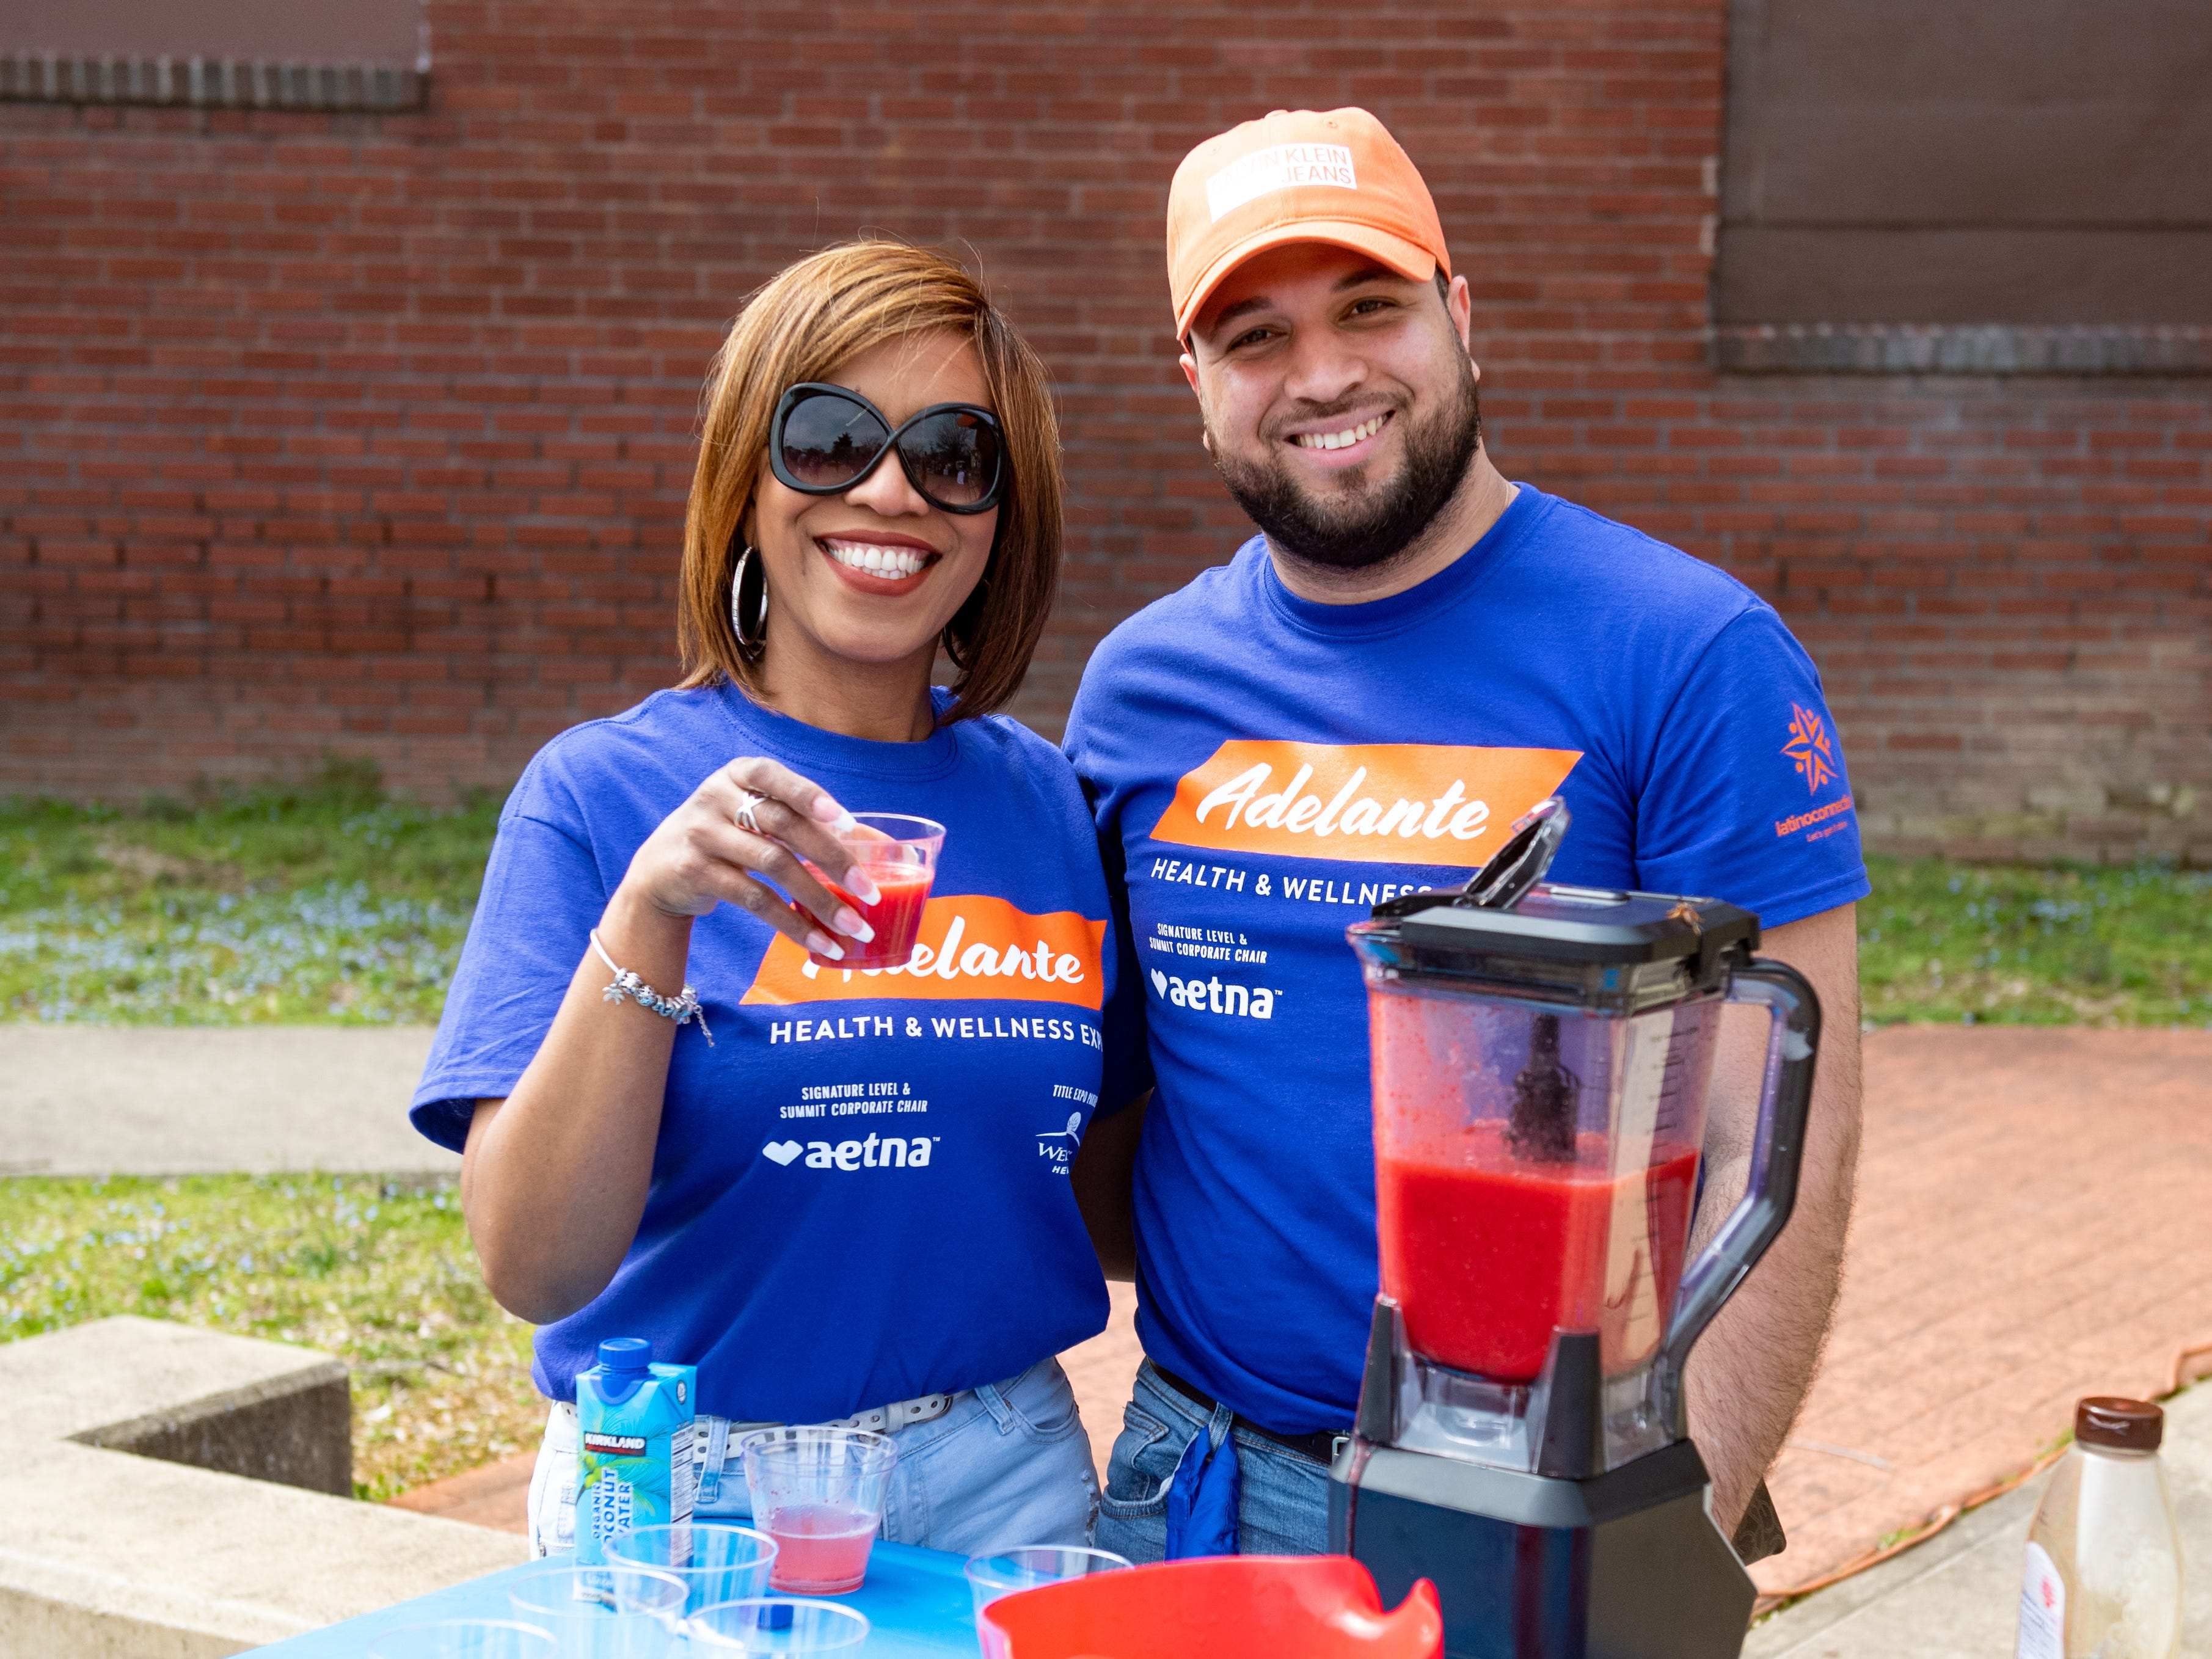 Leslie Ruiz and Pedro Fernandez make and serve smoothies to thirsty festival-goers during the Adelante Festival at Renaissance Park, March 30, 2019.